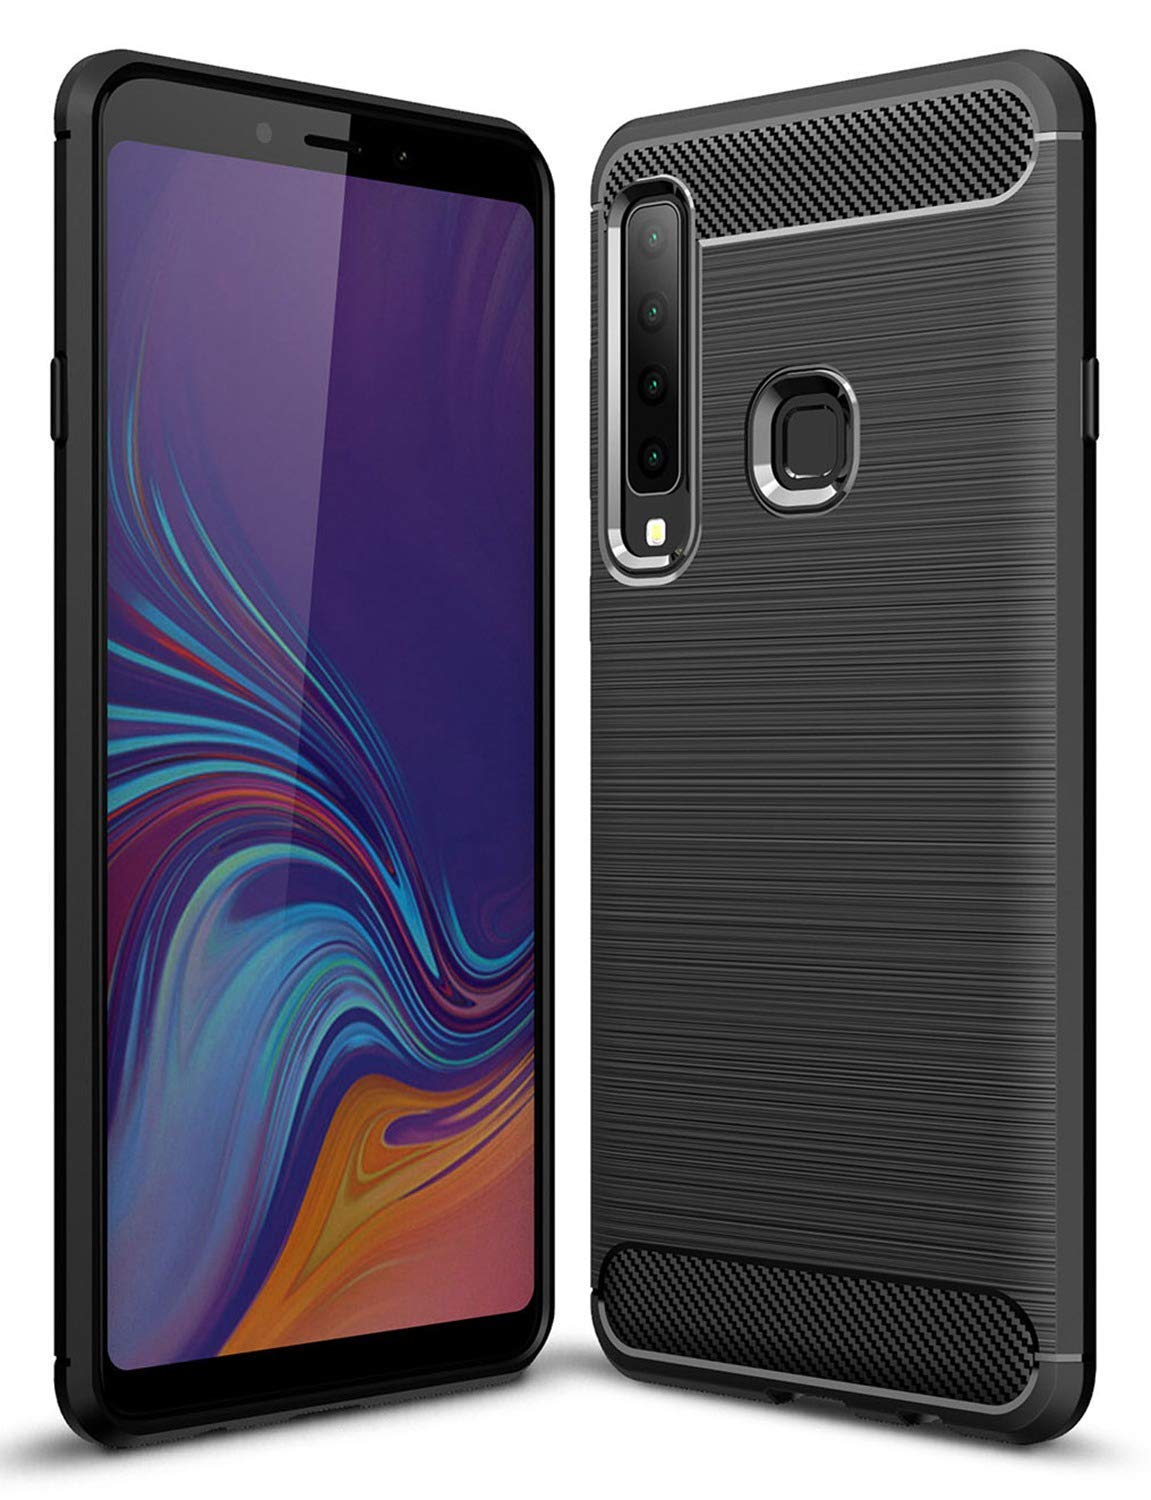 Toppix Case for Samsung Galaxy A9 (2018), Soft TPU Bumper Flexible [Shock Absorption] [Carbon Fiber Texture] Bumper Protective Cover for Galaxy A9 (2018), Black